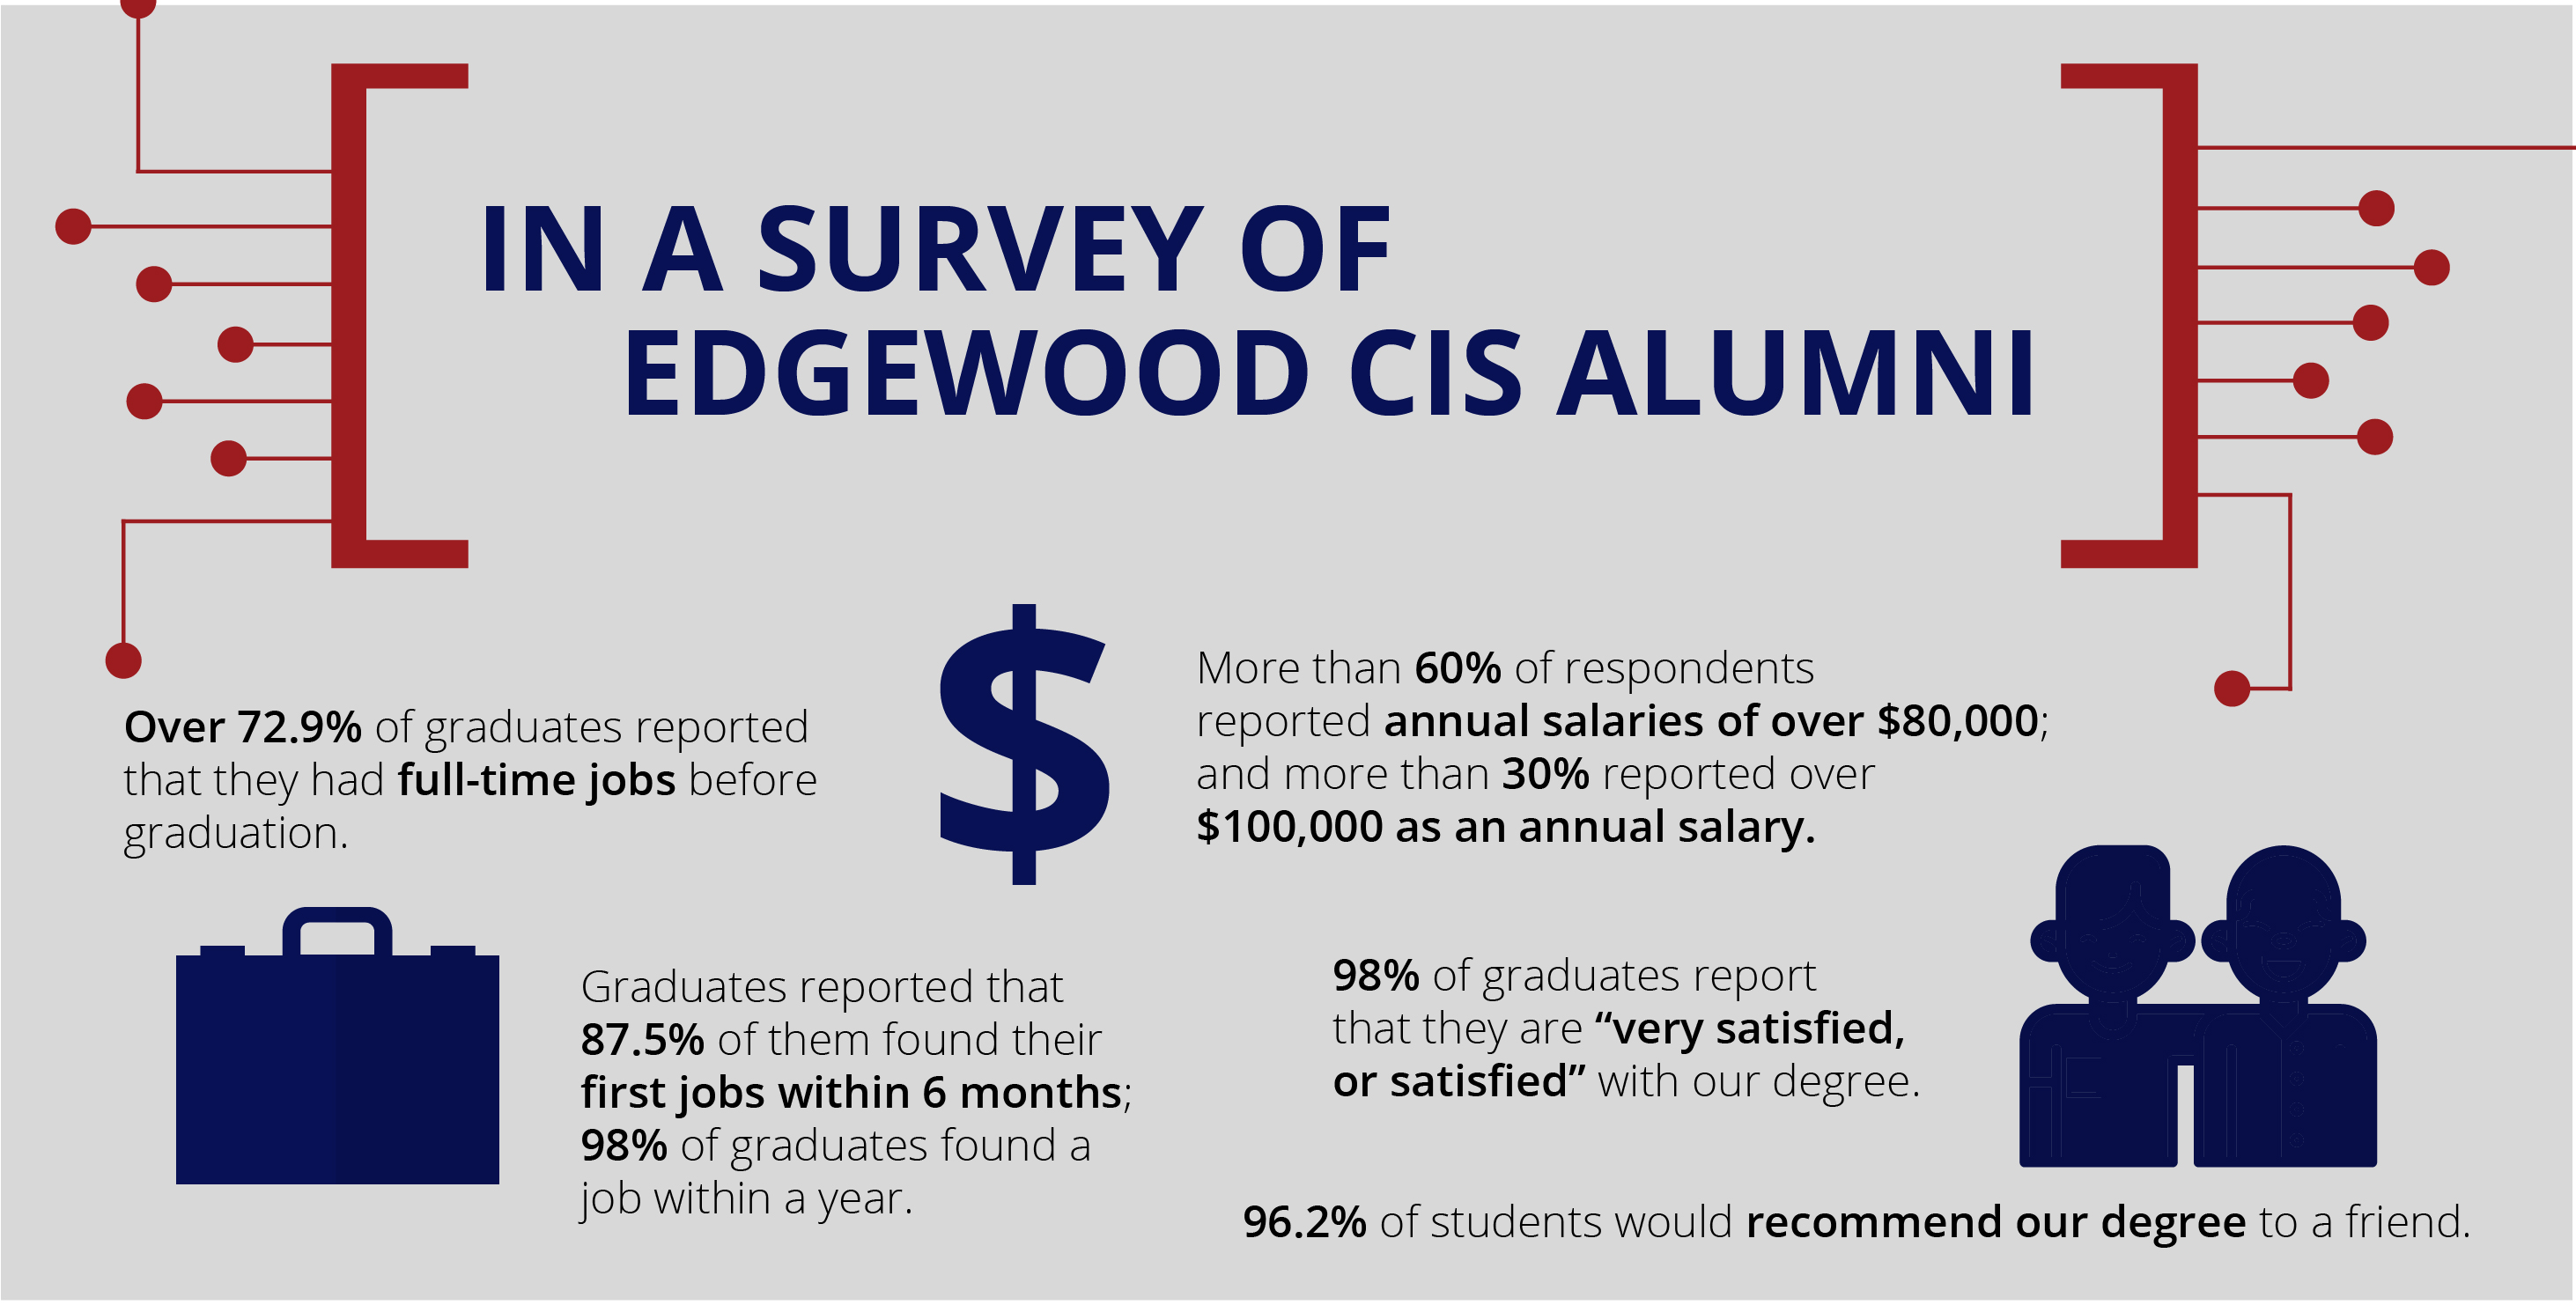 In a survey of Edgewood CIS Alumni